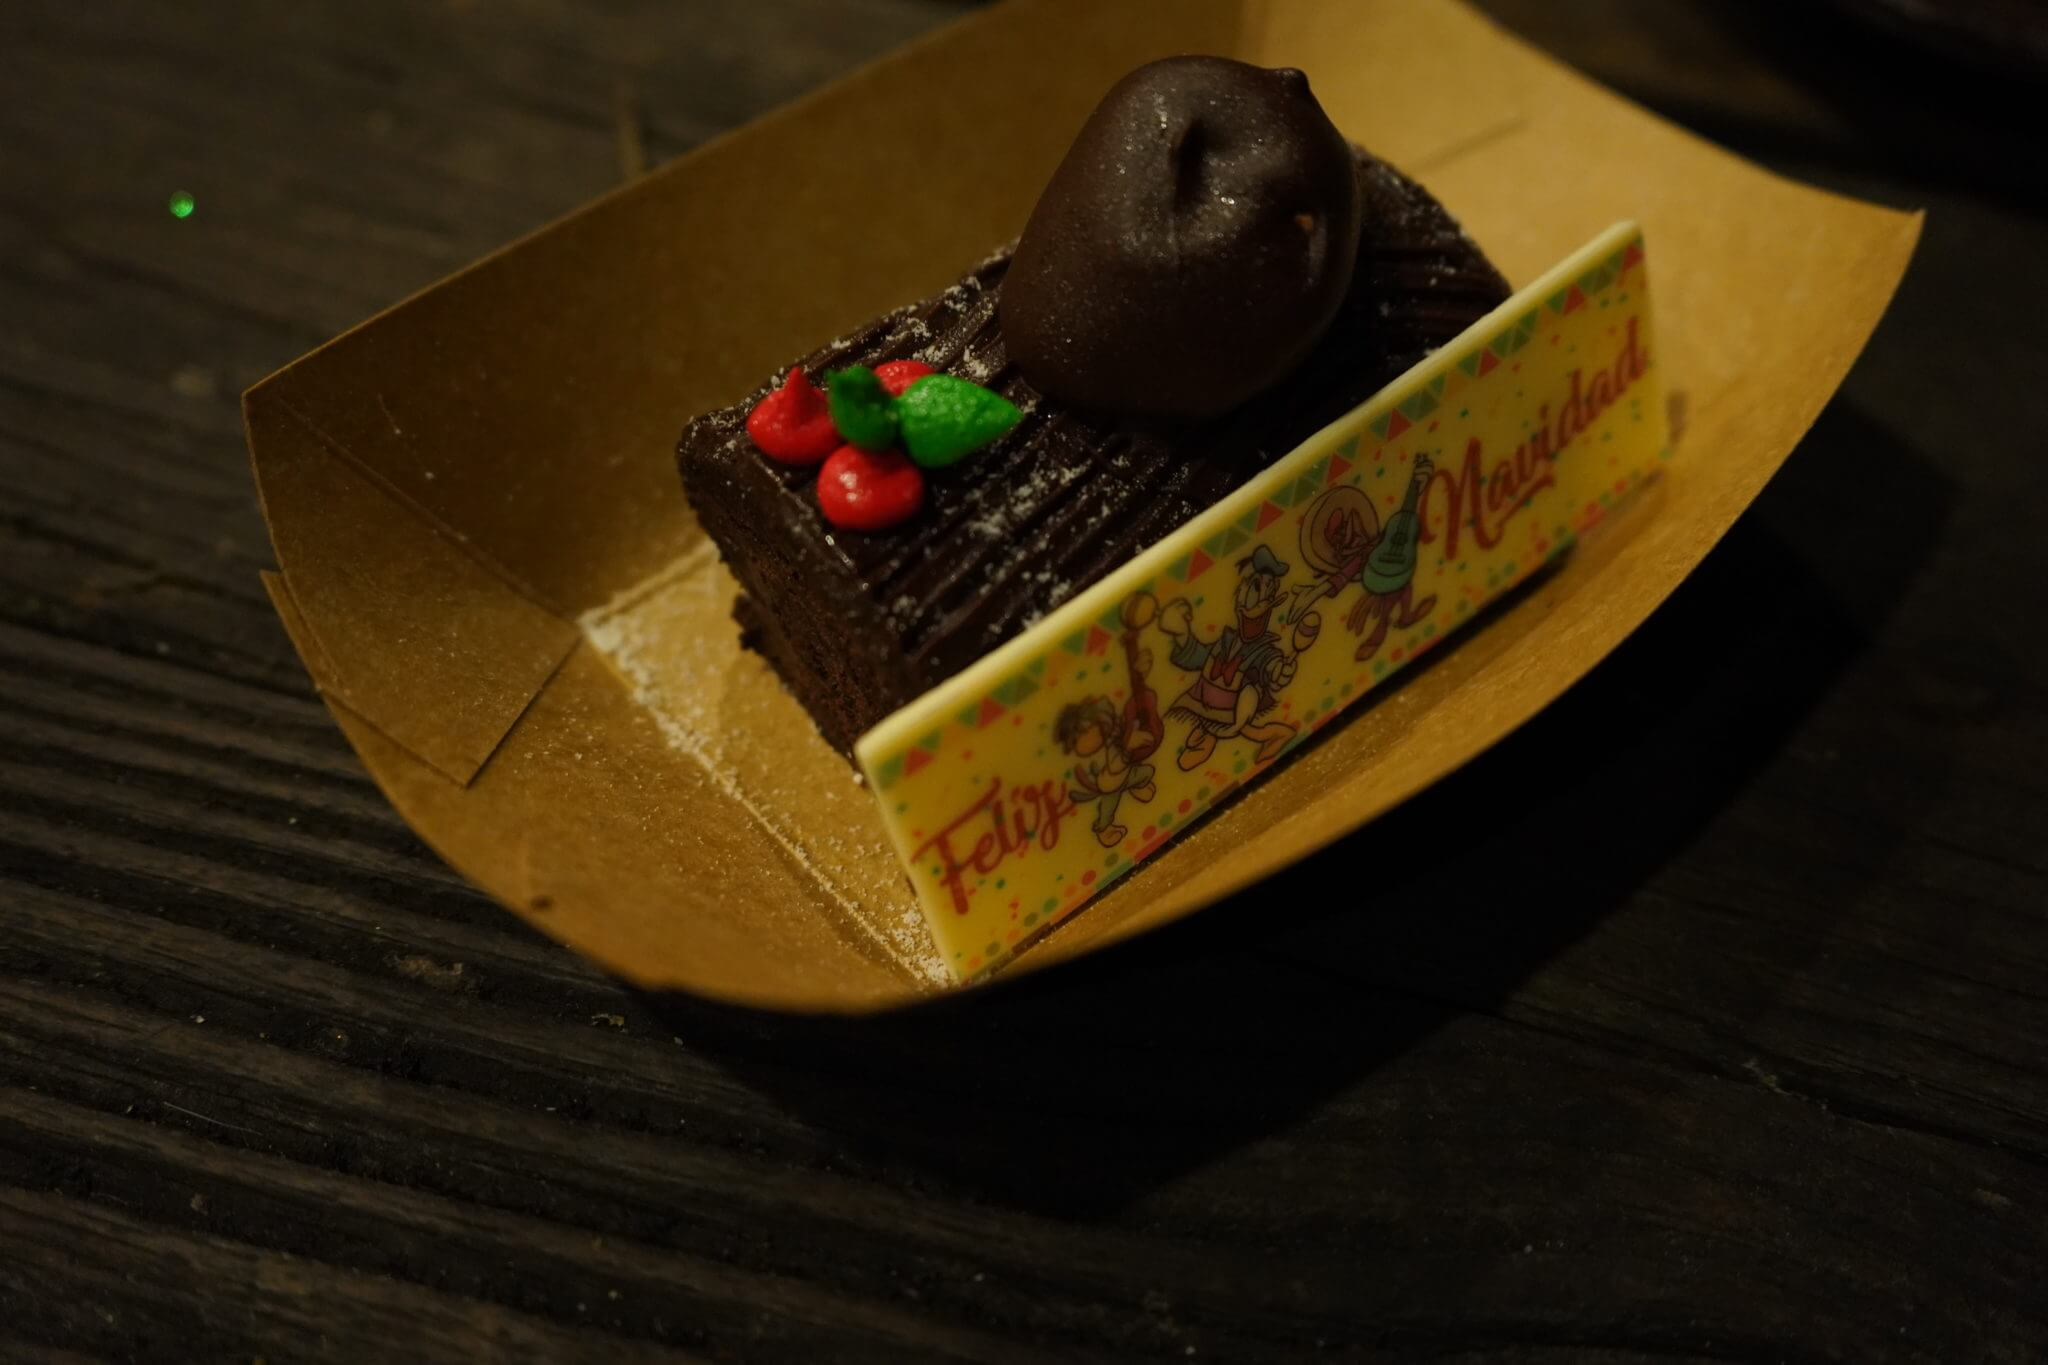 Pecos Bill - Three Caballeros Spiced Chocolate Yule Log at Mickey's Very Merry Christmas Party in Disney World